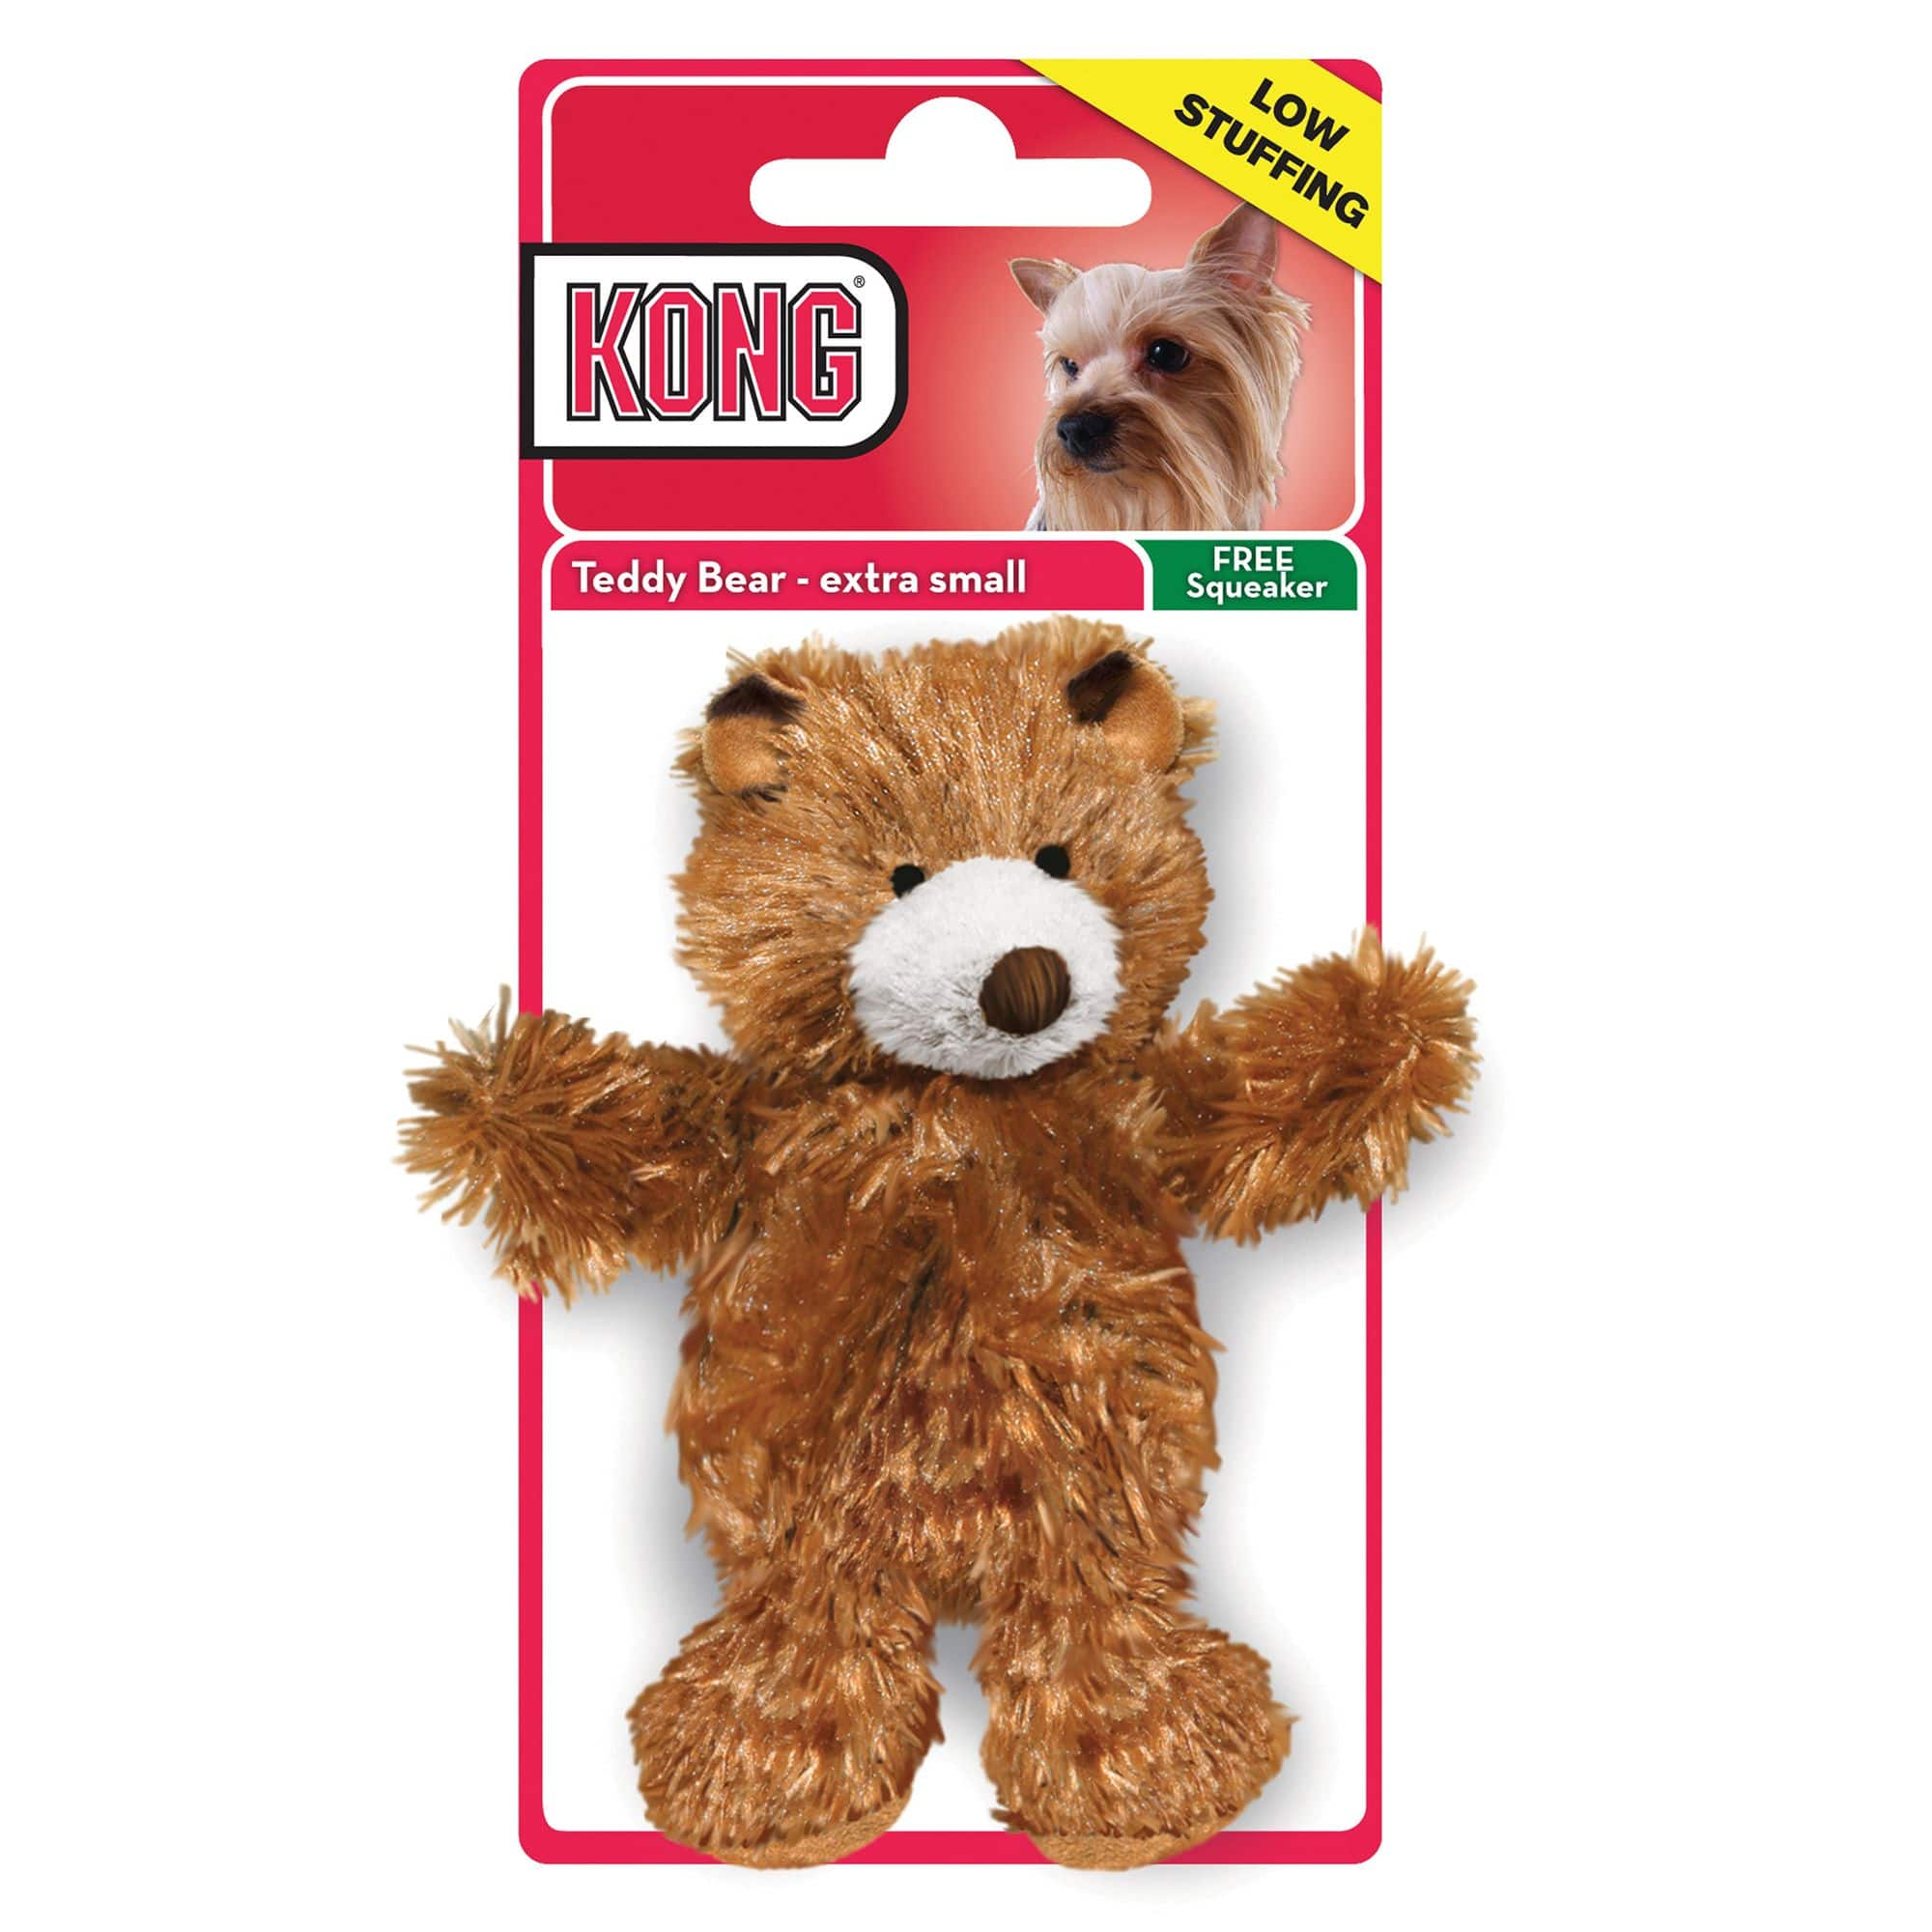 KONG Small Teddy Bear Dog Toy  - Plush, Squeaker $1 ymmv